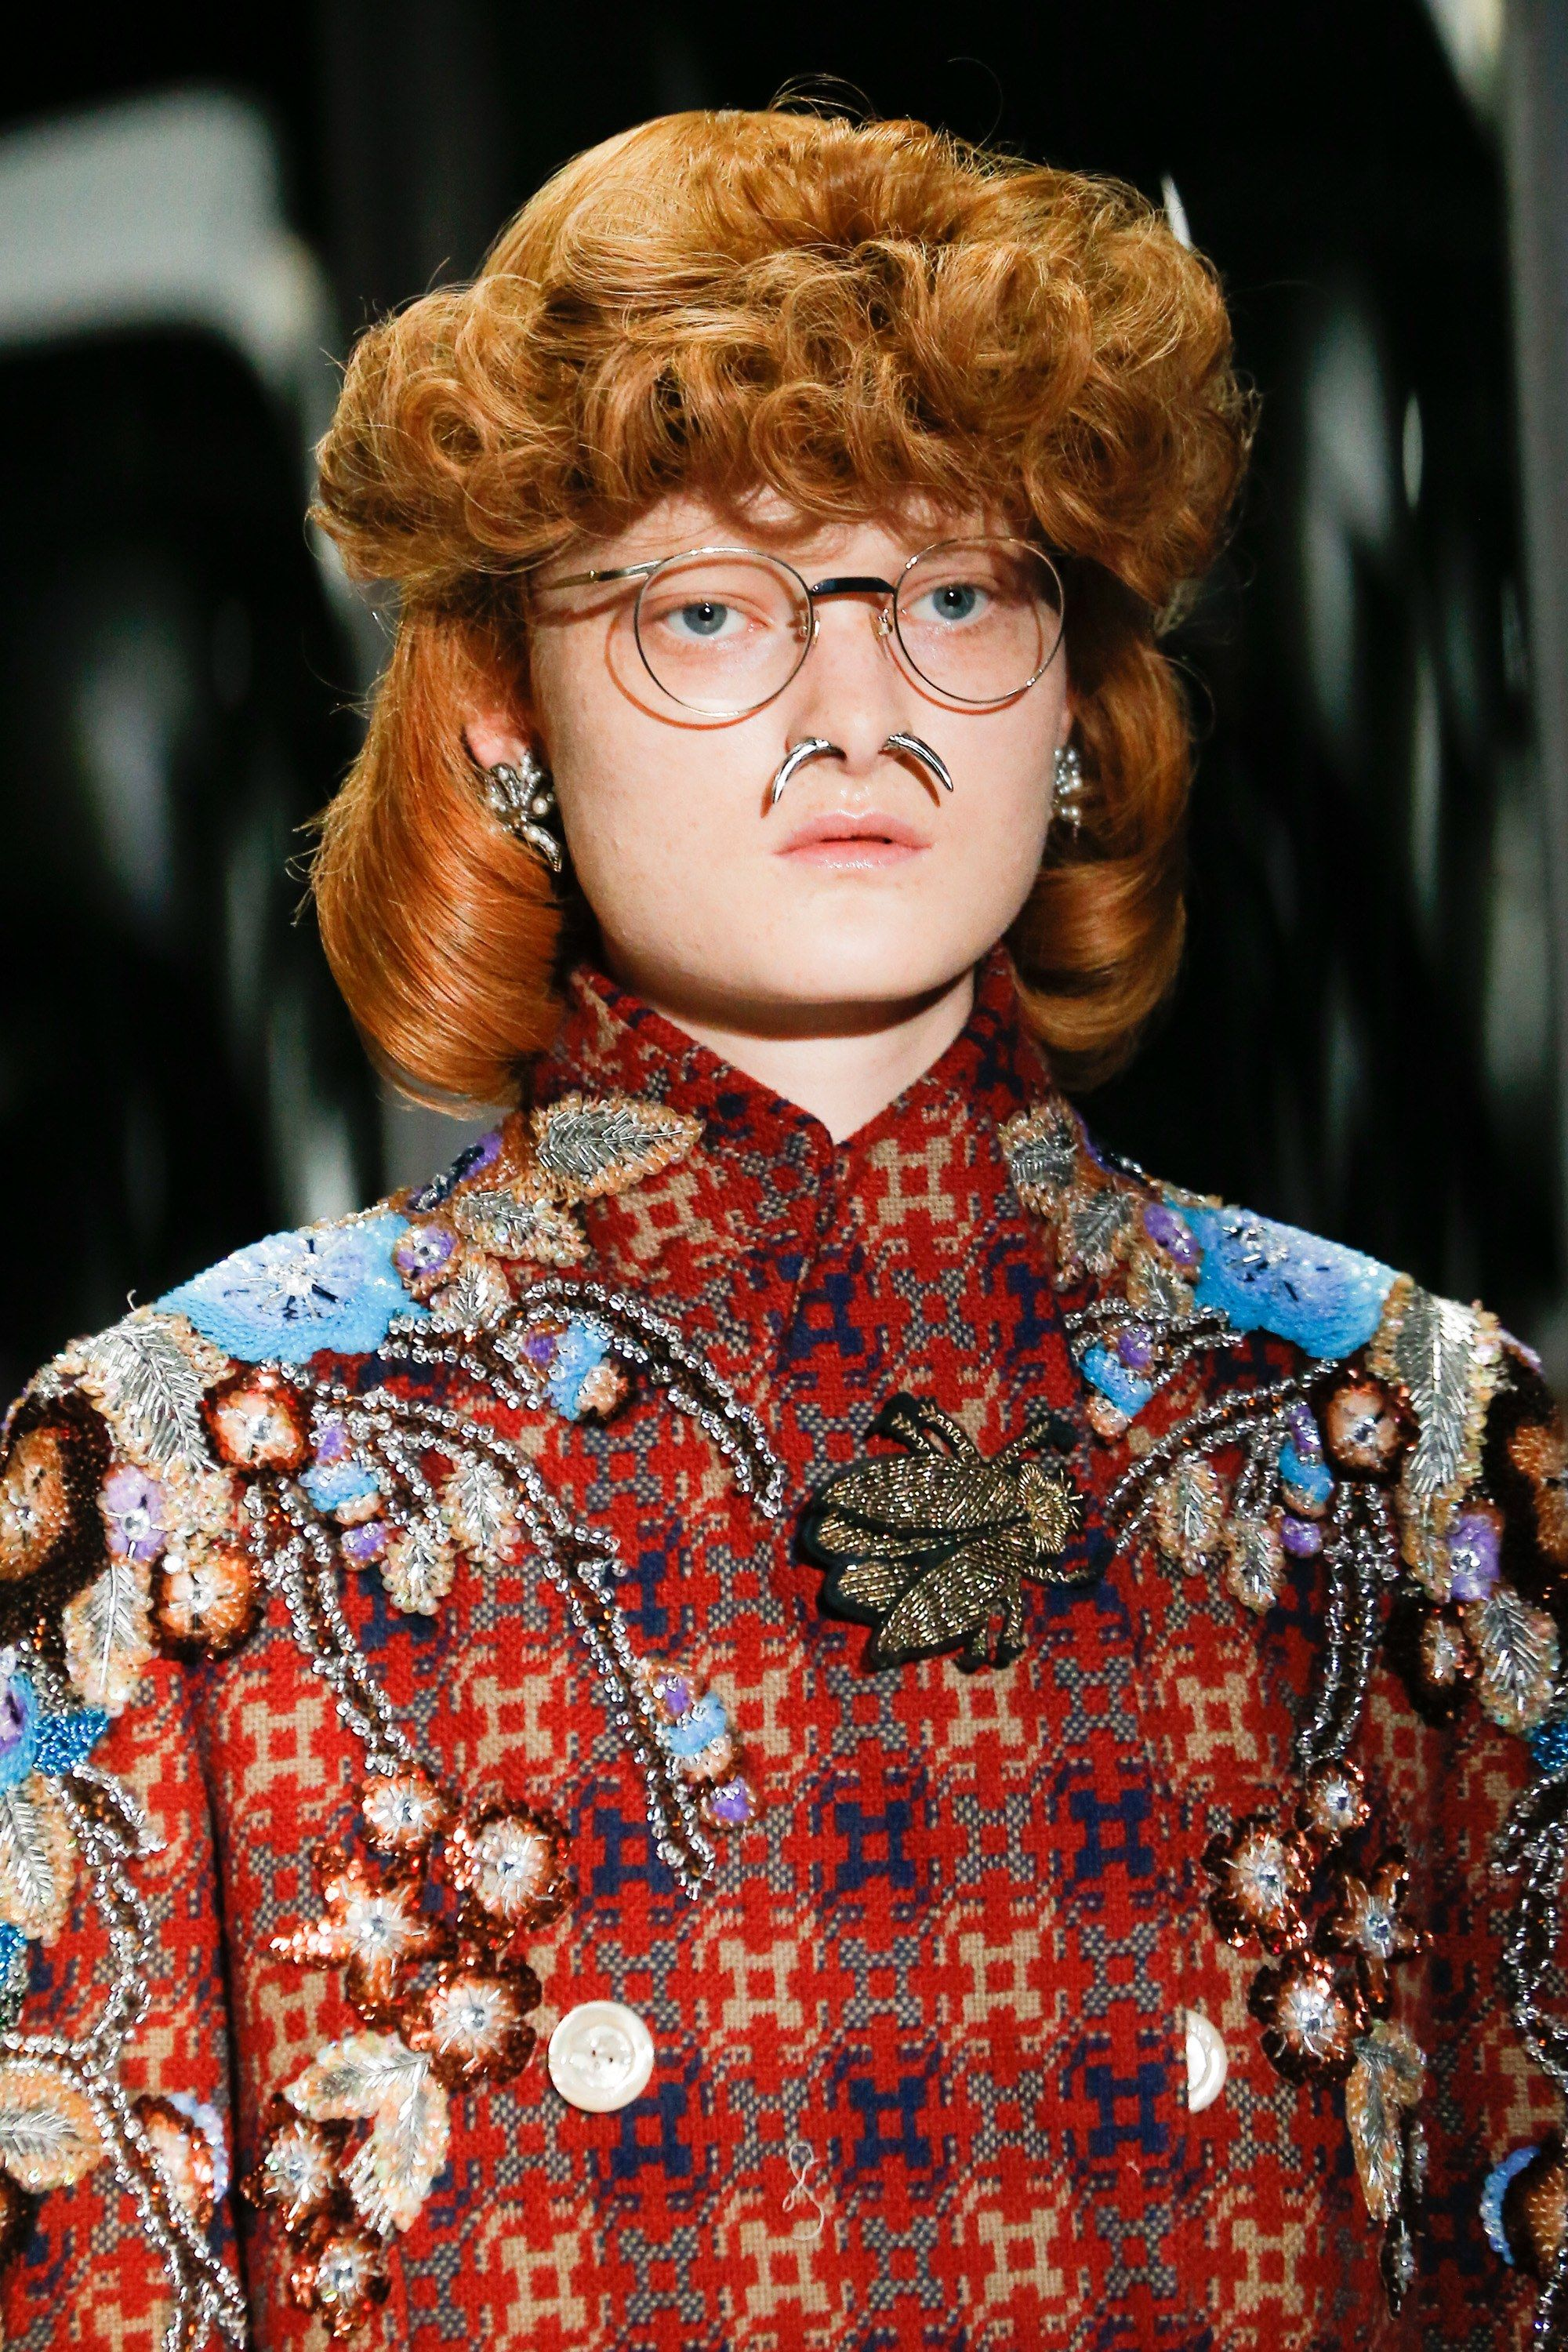 http://www.vogue.com/fashion-shows/fall-2017-menswear/gucci/slideshow/collection